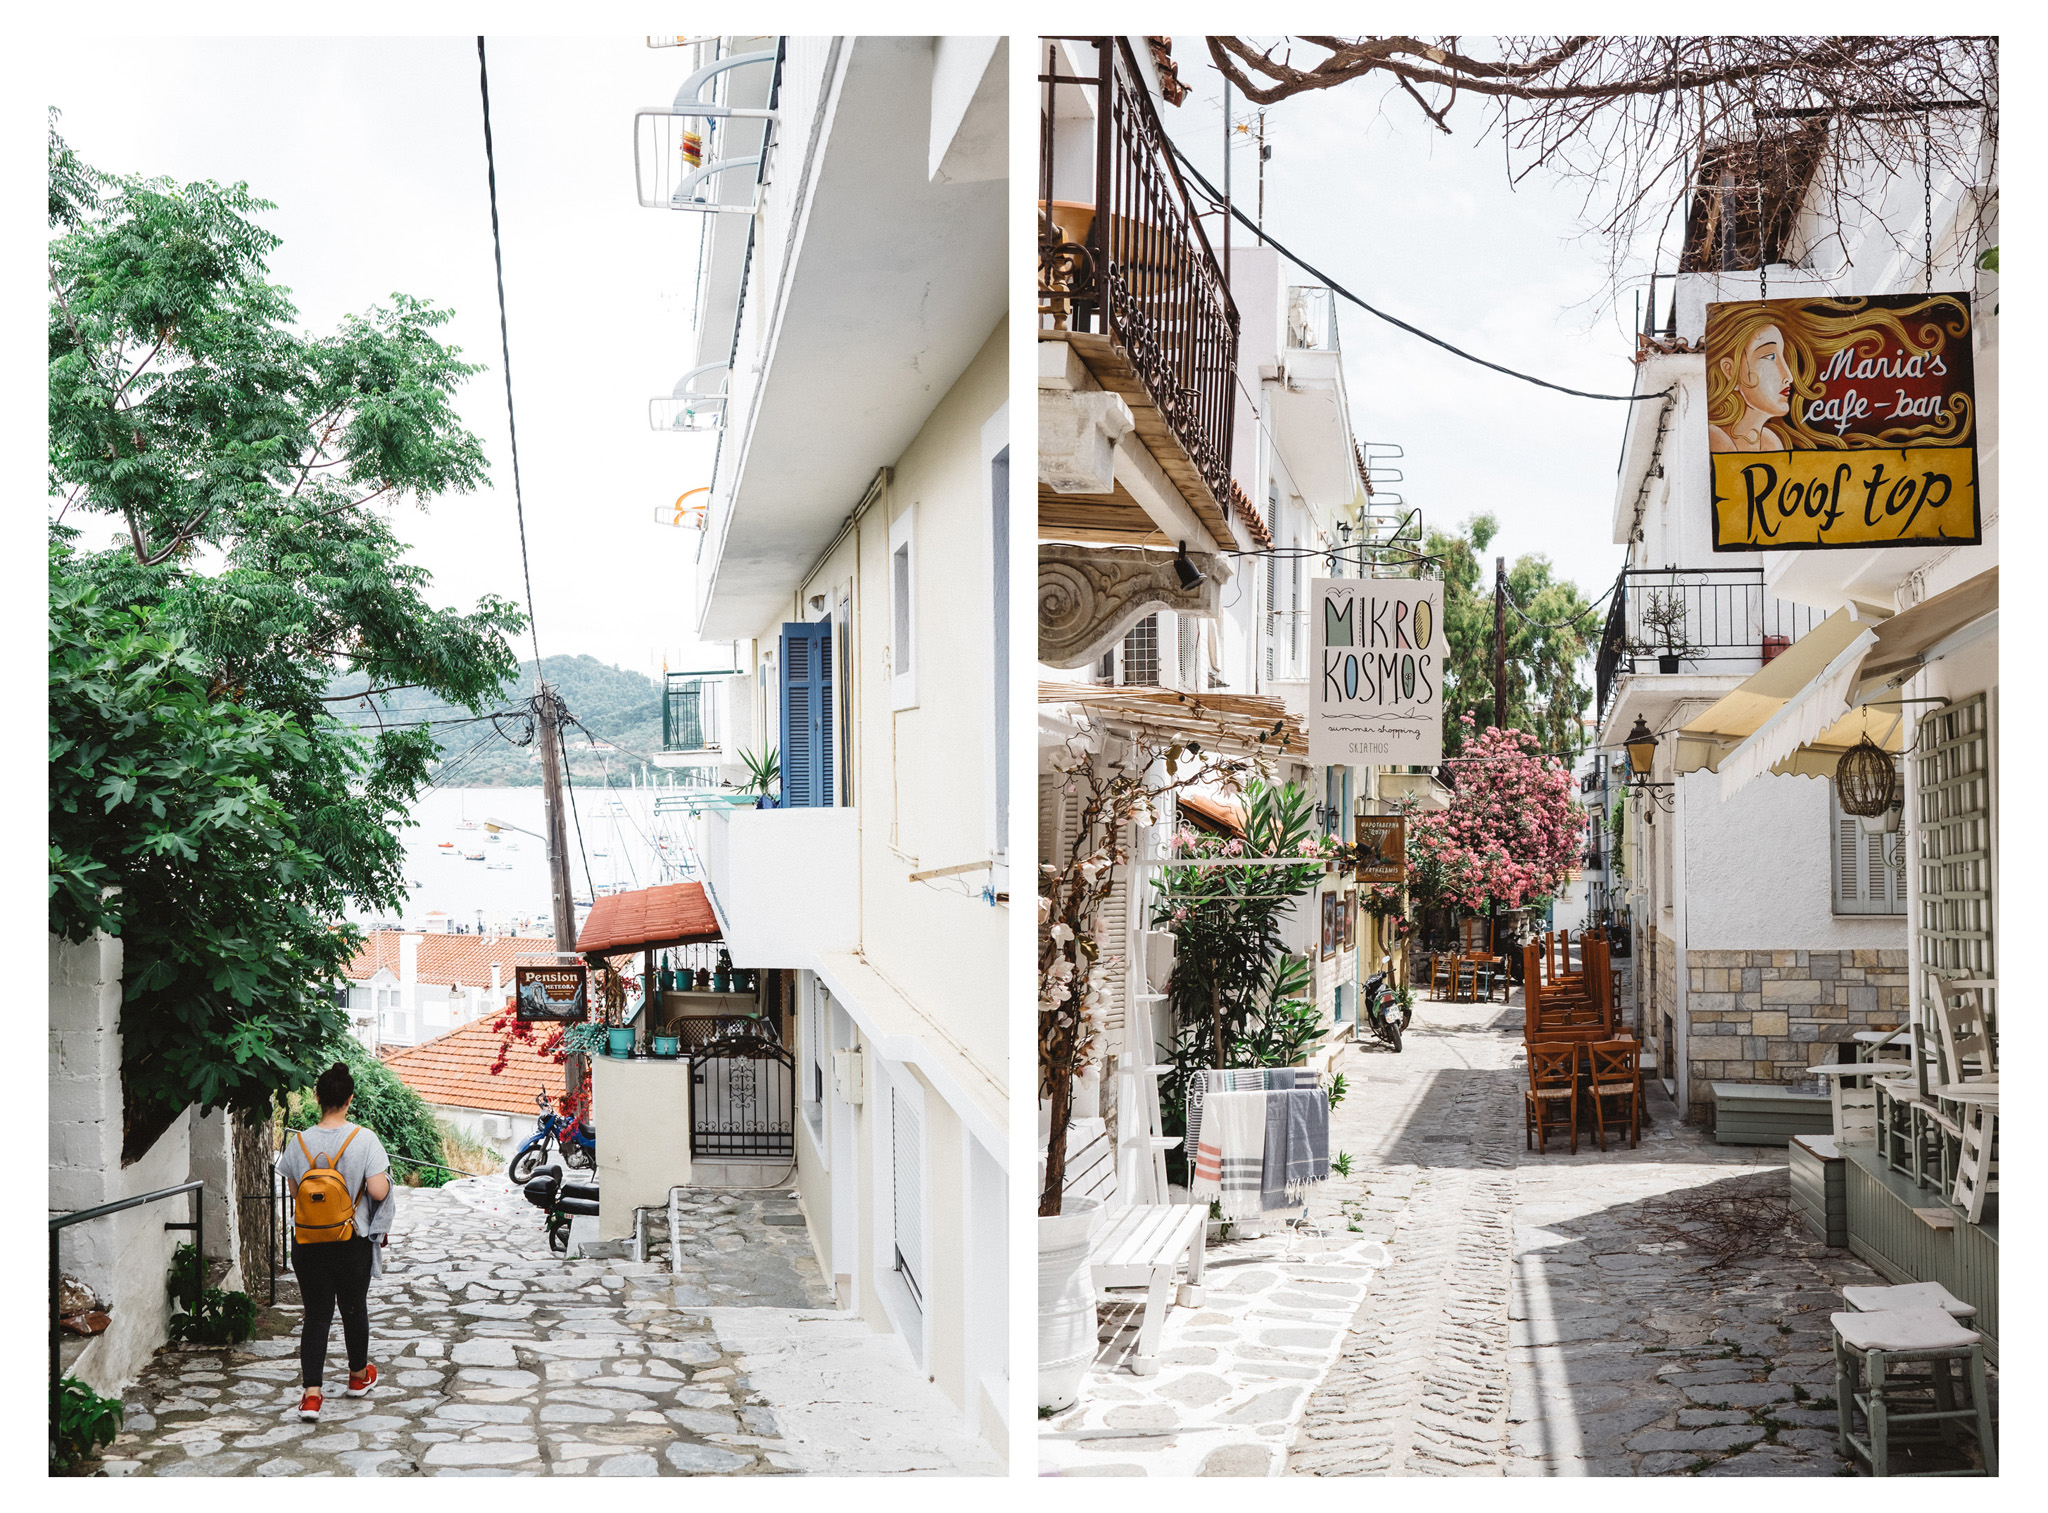 Skiathos is an Sporadic island in Greece. It boasts a wealth of clean and stunning beaches and with mountains to explore as well as beautiful old town it offers so much more than fly and flop. It's also an affordable destination. Retr~eat blog - travel and lifestyle.